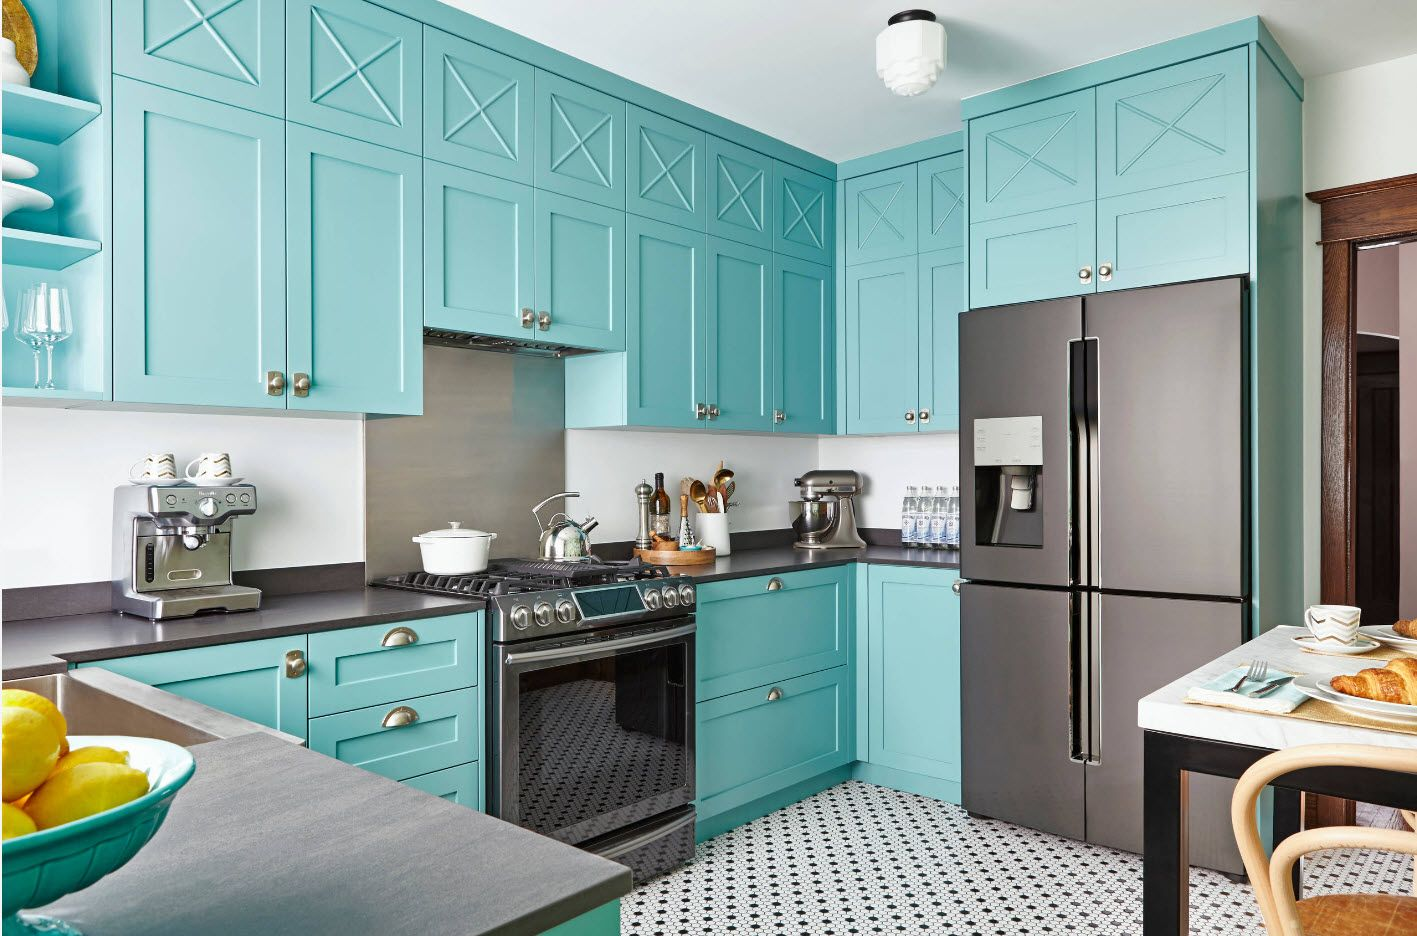 Modern Cottage Interior Design Tips. Trends and Features 2017 ...